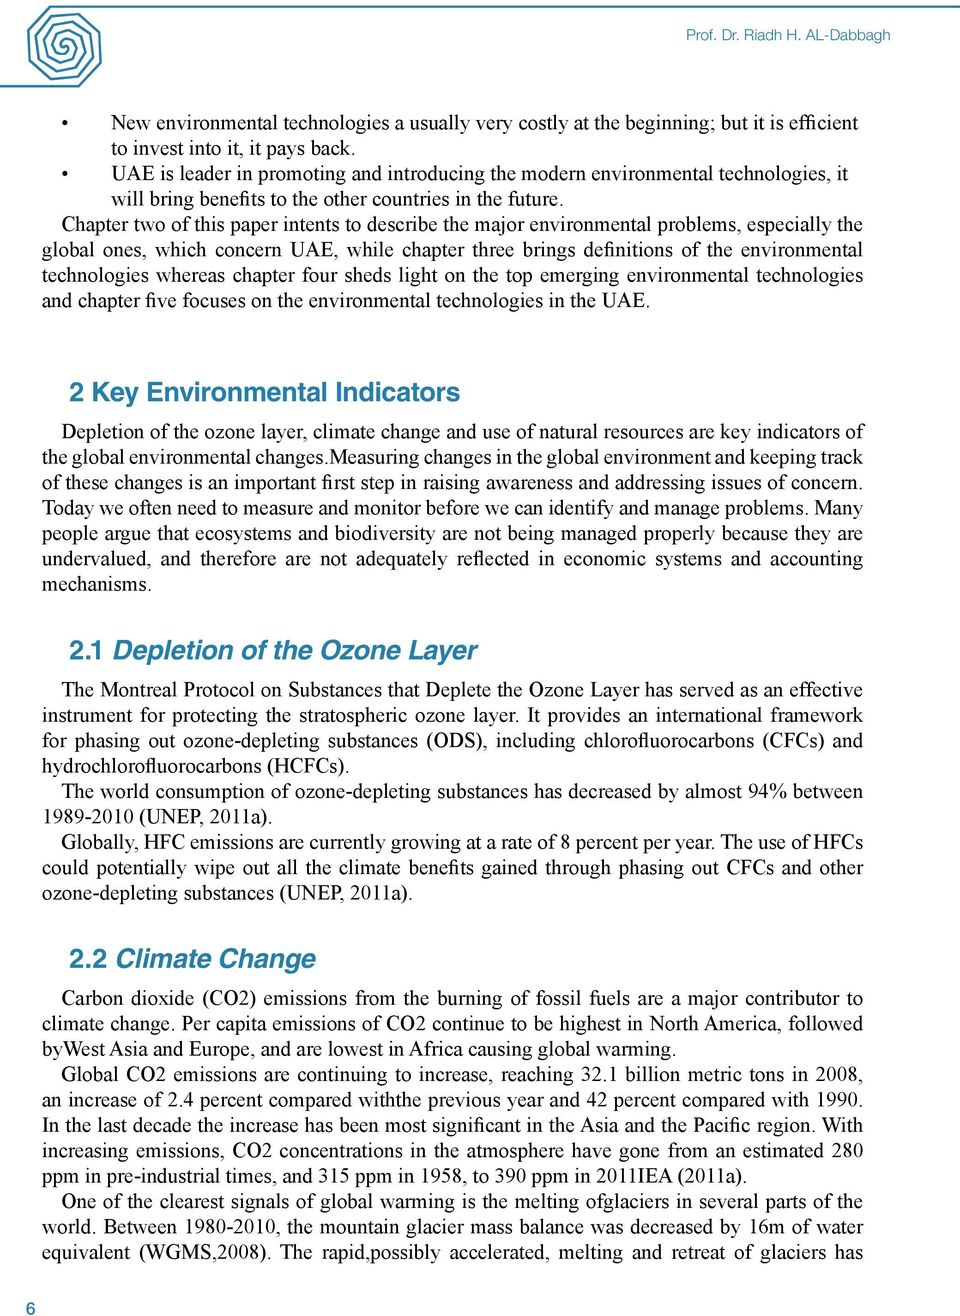 Chapter two of this paper intents to describe the major environmental problems, especially the global ones, which concern UAE, while chapter three brings definitions of the environmental technologies